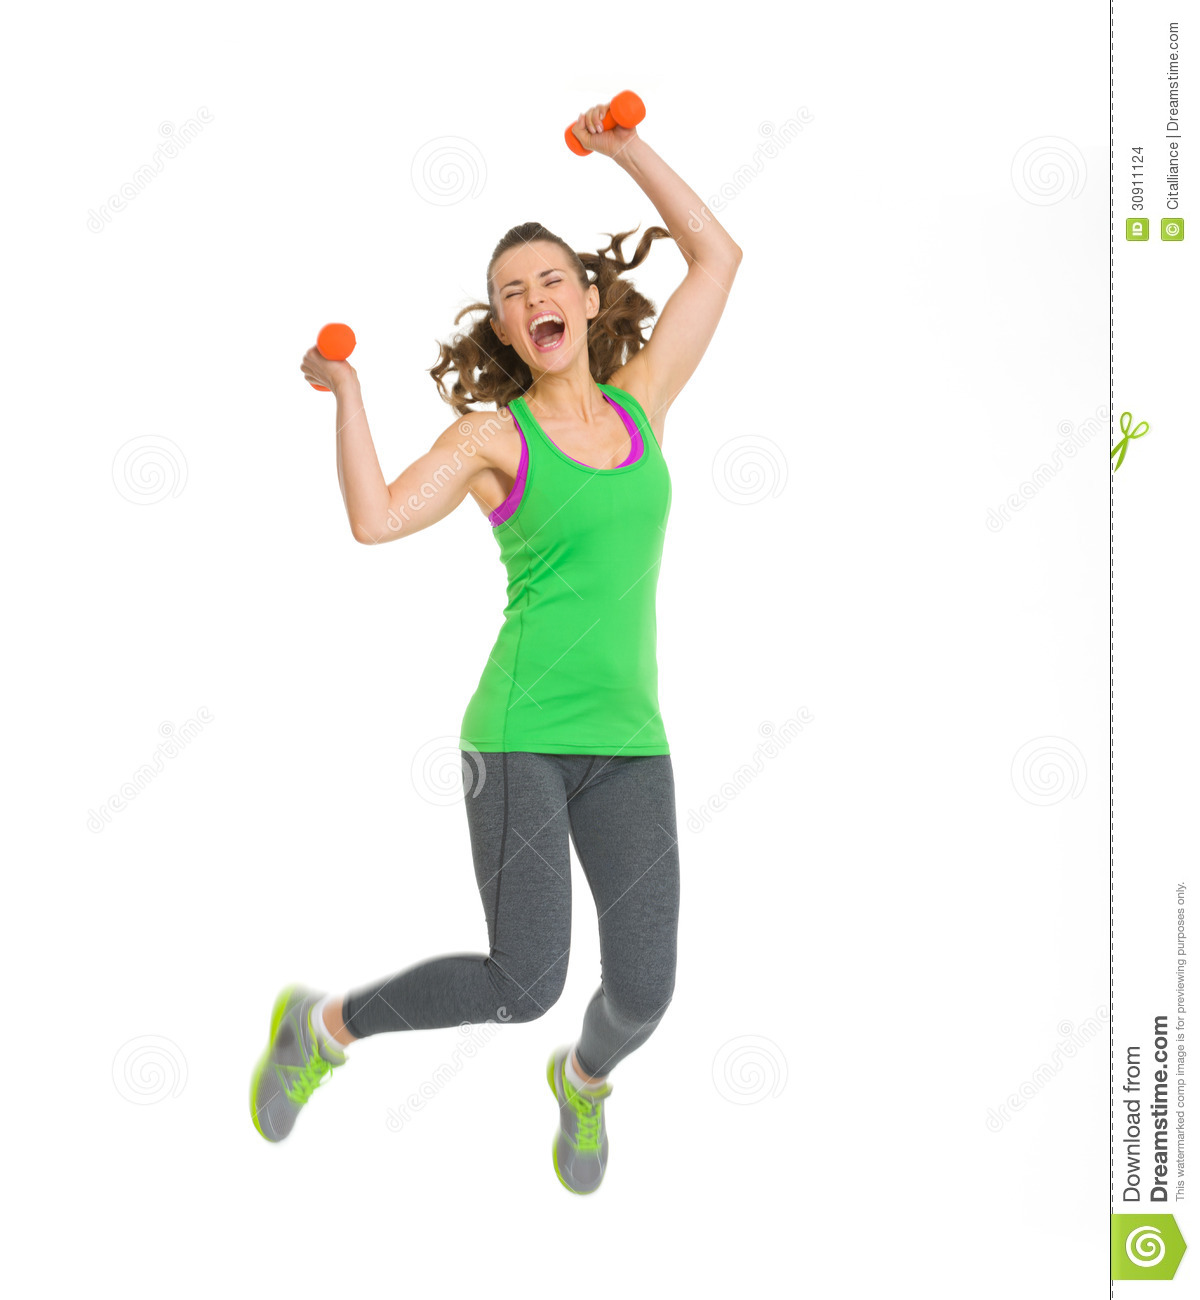 happy-fitness-young-woman-dumbbells-jump